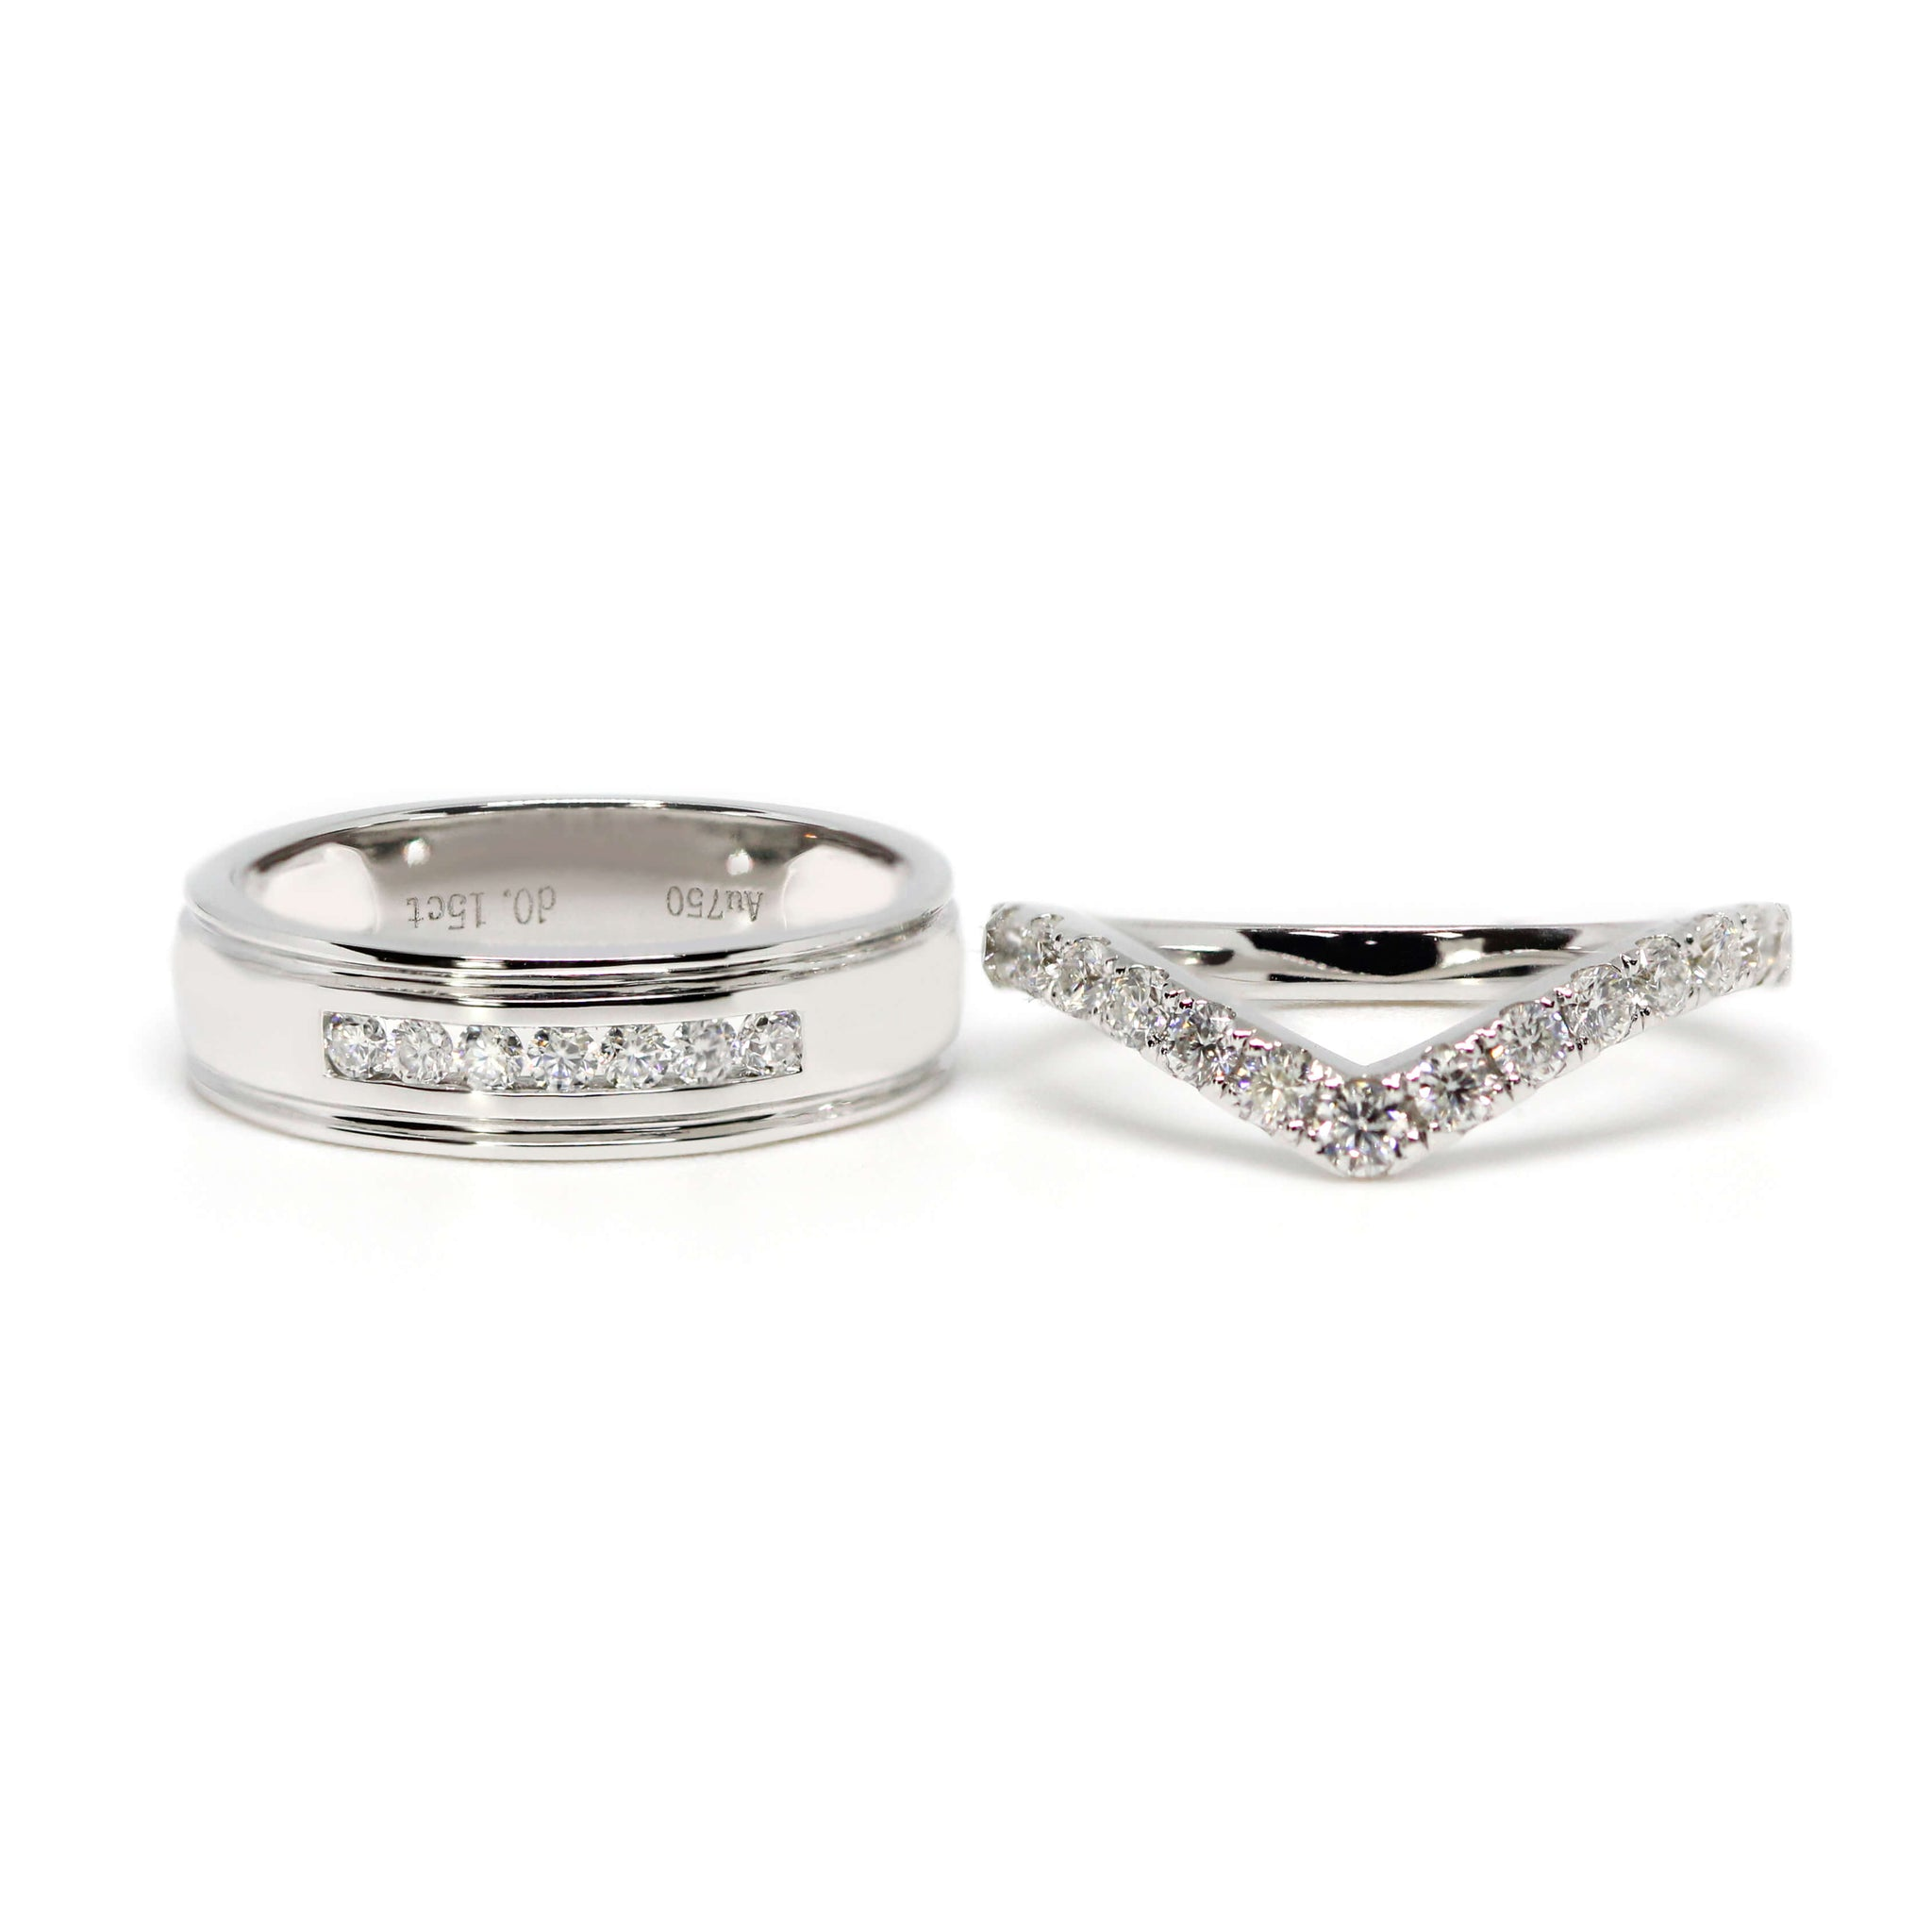 18K White Gold Matching Stacking Wedding Rings in V Shape and Moissanite